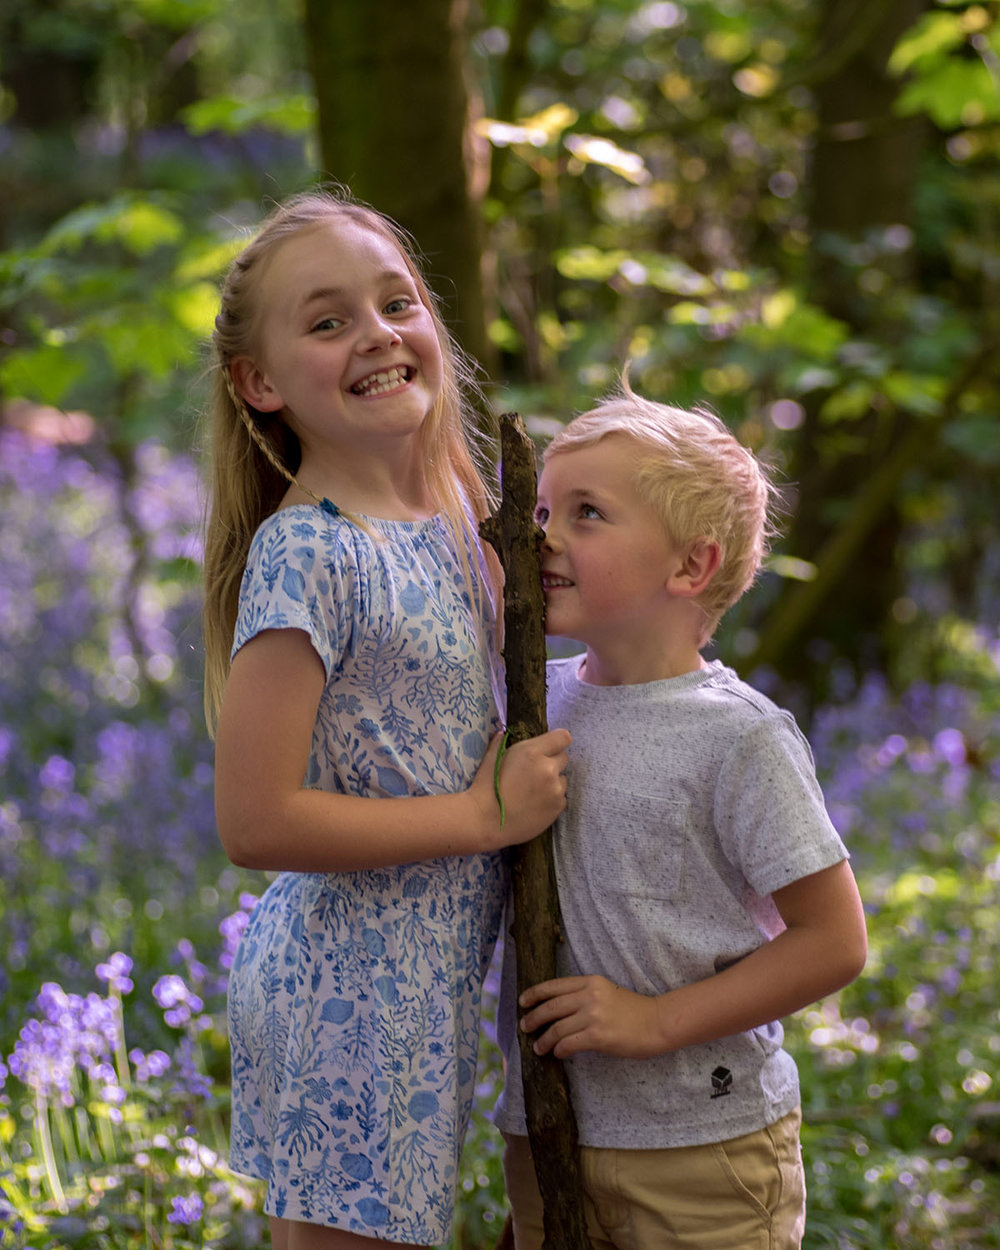 A family photo shoot in Oldmoor woods, Nottinghamshire. Here the kids are playing with a stick. Nottingham family photography